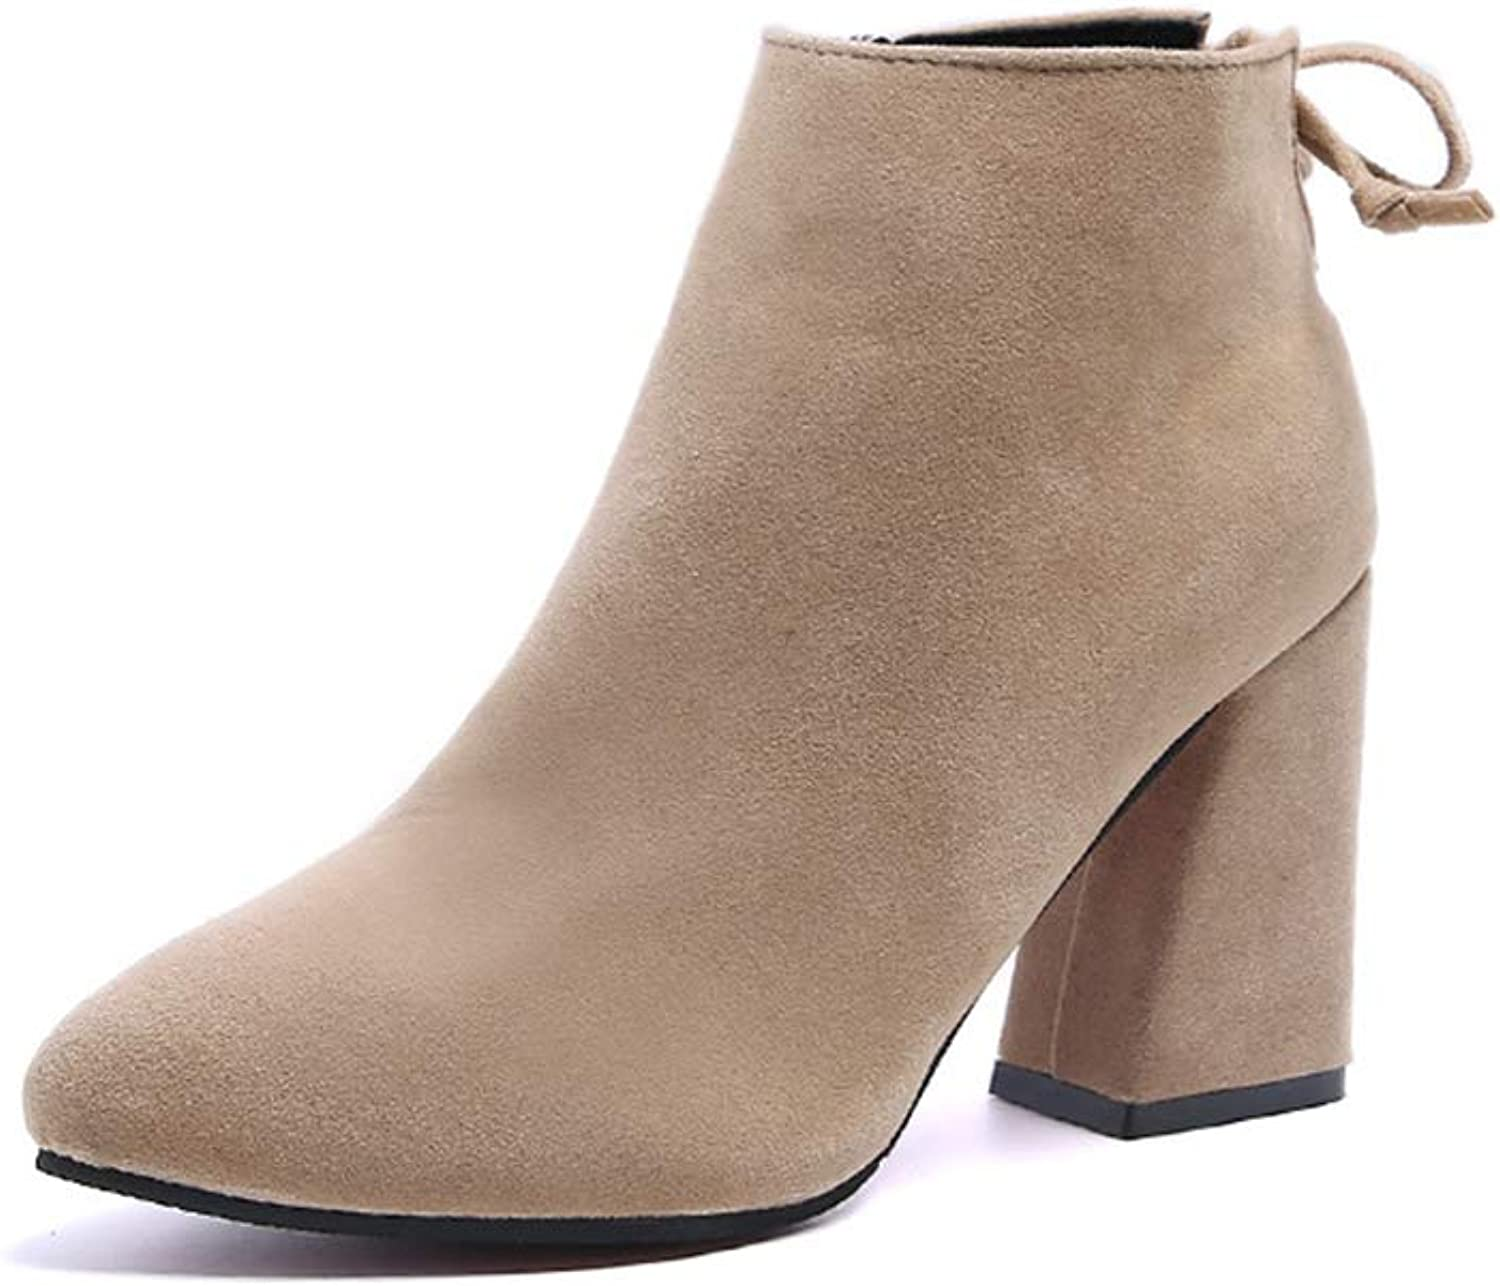 MIKA HOM Women's Suede Boots Side Zipper Rear Strap Boots Boots Bare Boots Thick Heel Boots